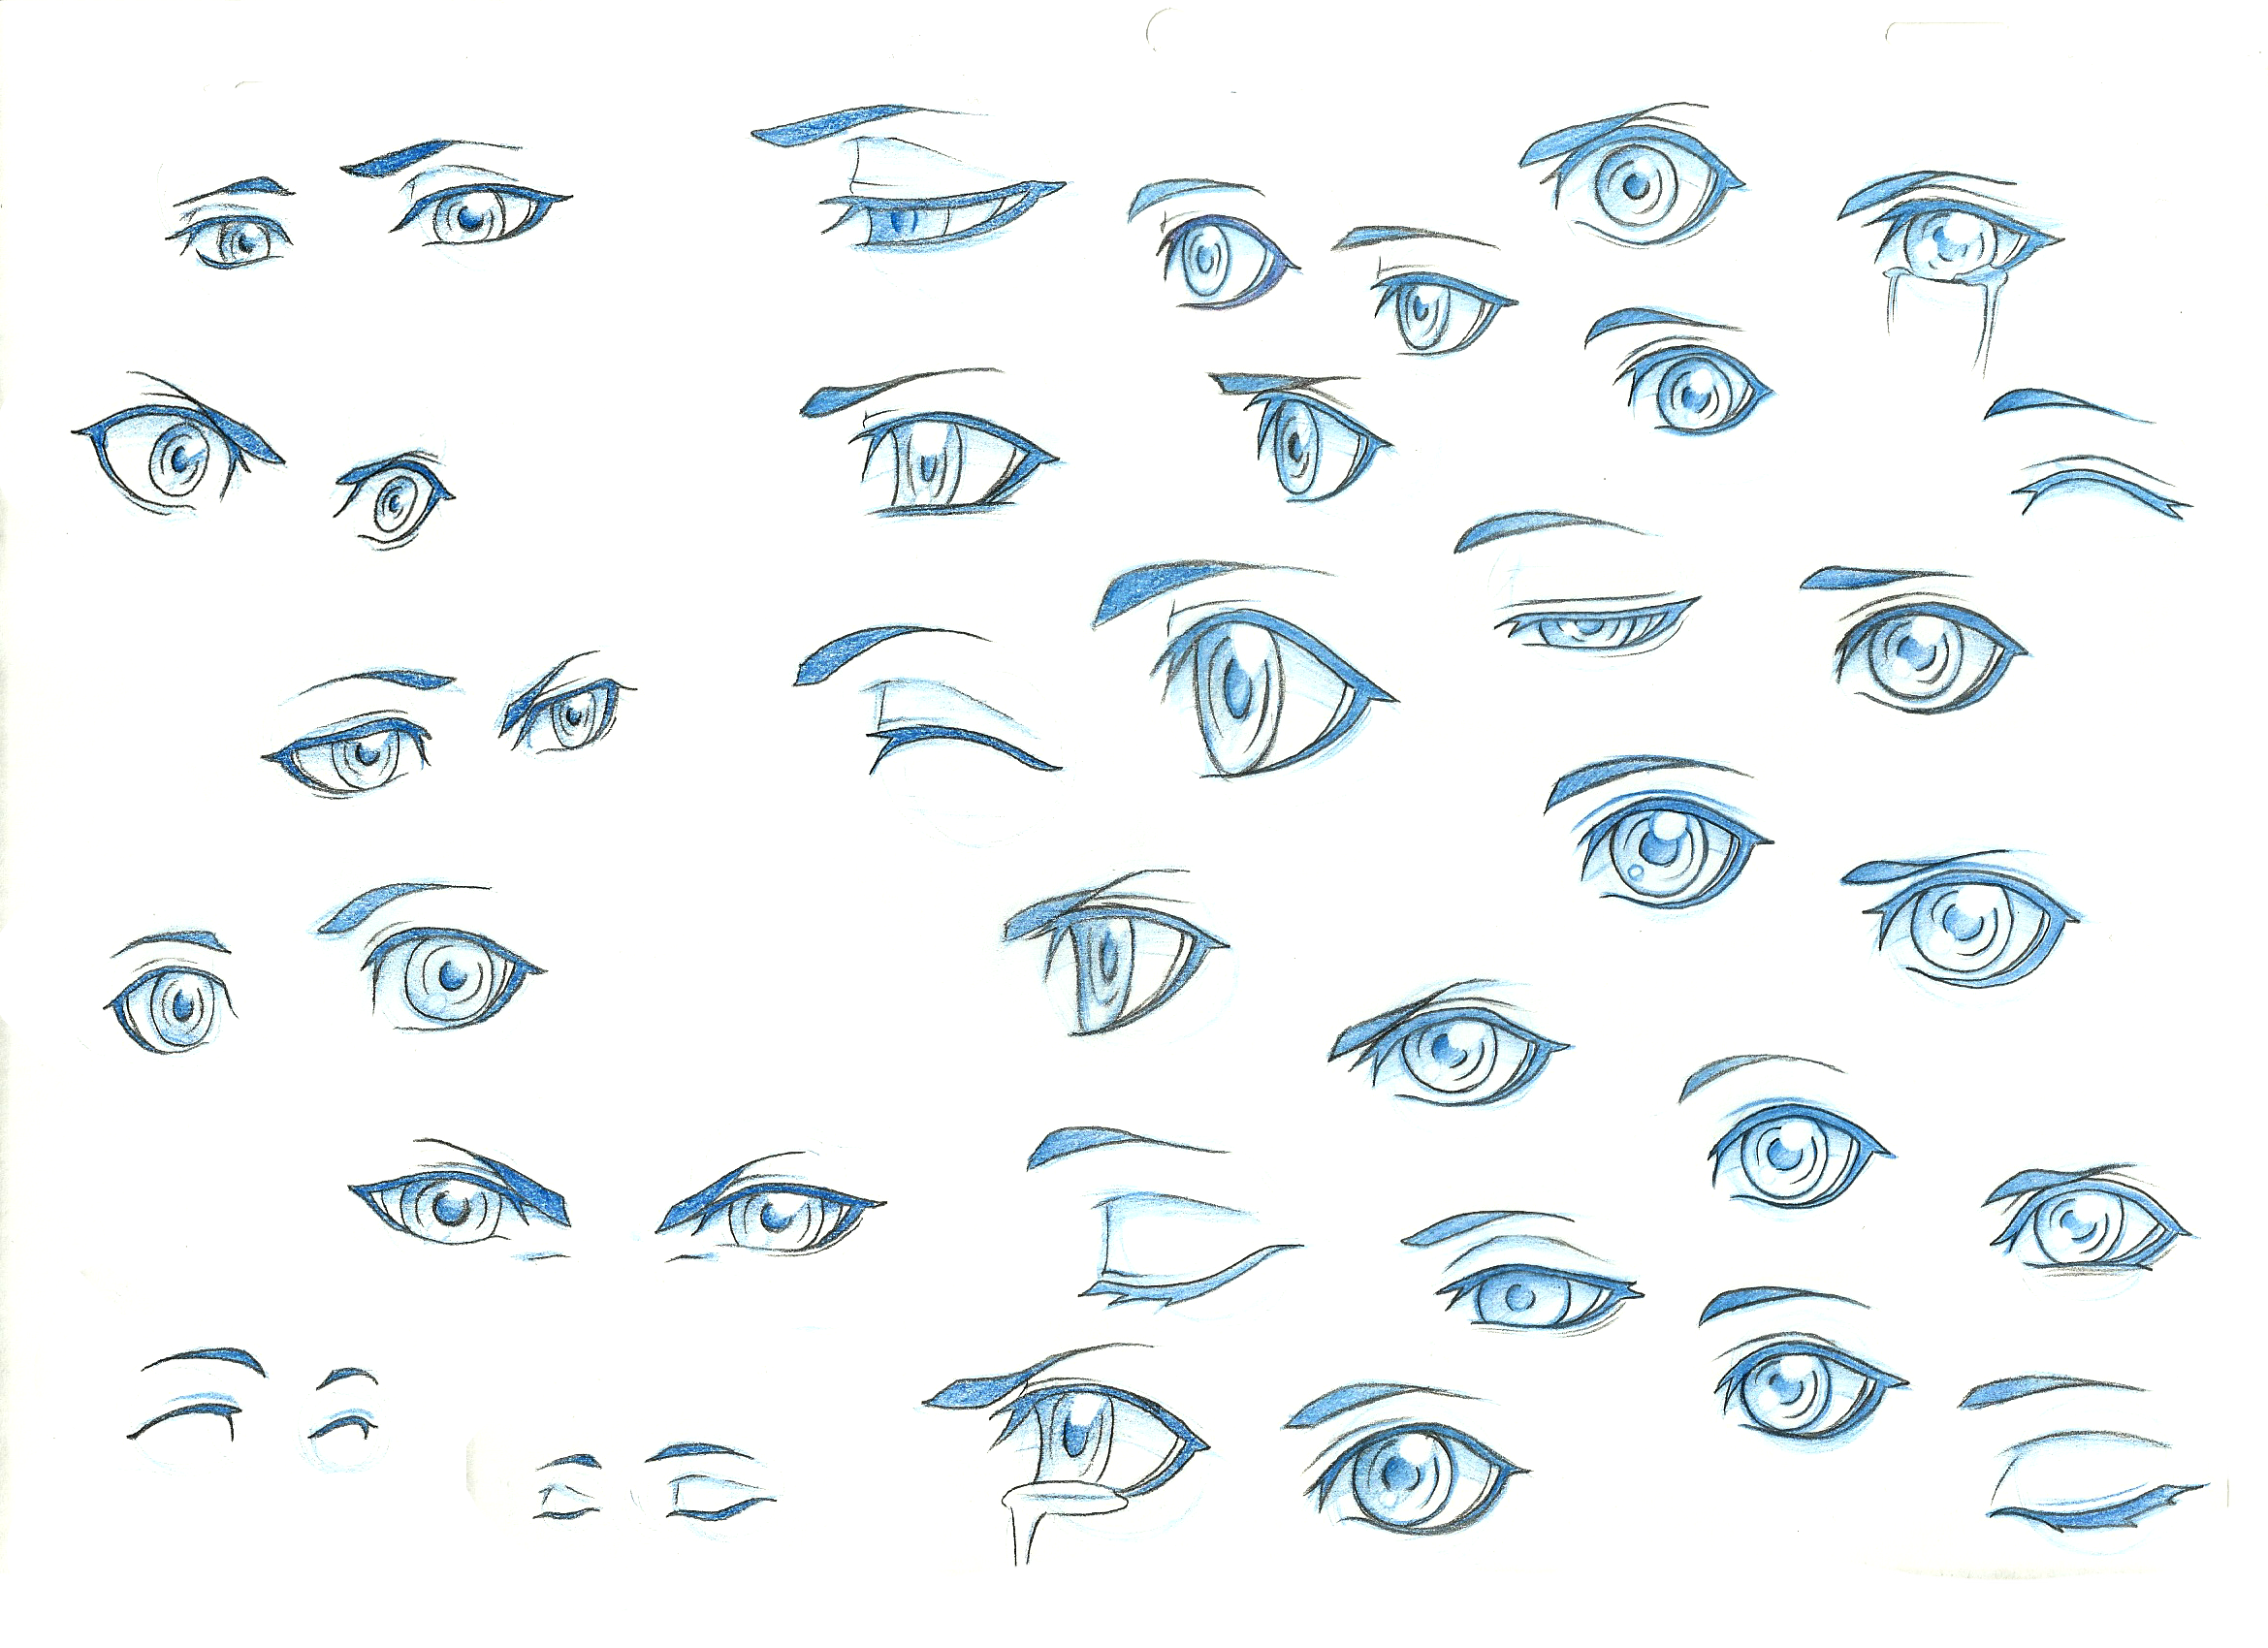 anime eyes reference male: Eye Ref 1 By TheShionProject On DeviantArt